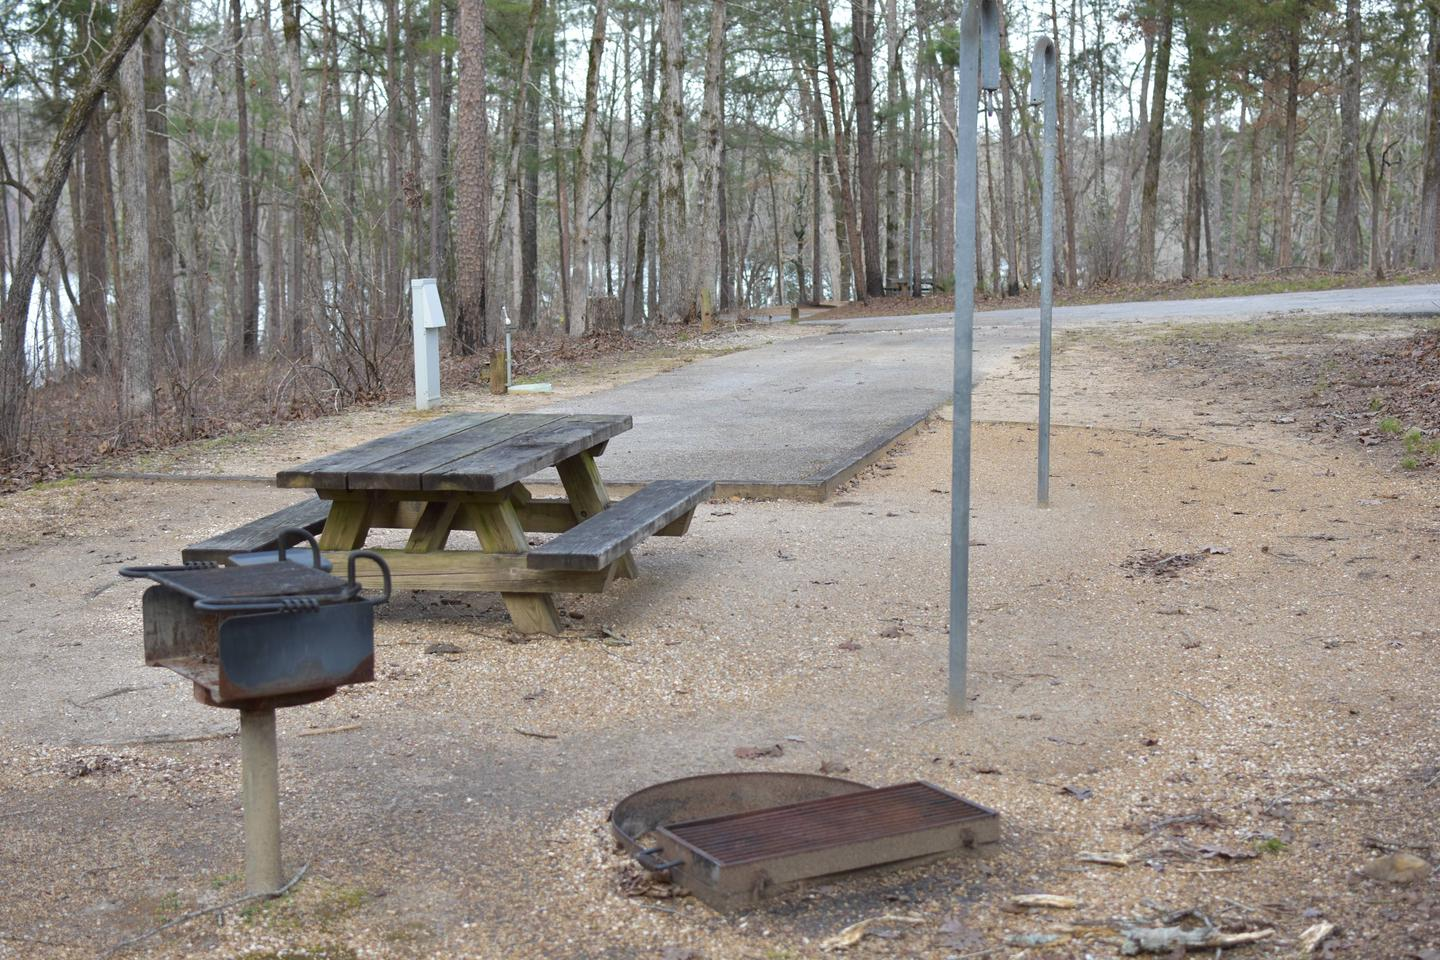 Fawn Site 80-3Fawn Site 80, March 1, 2020